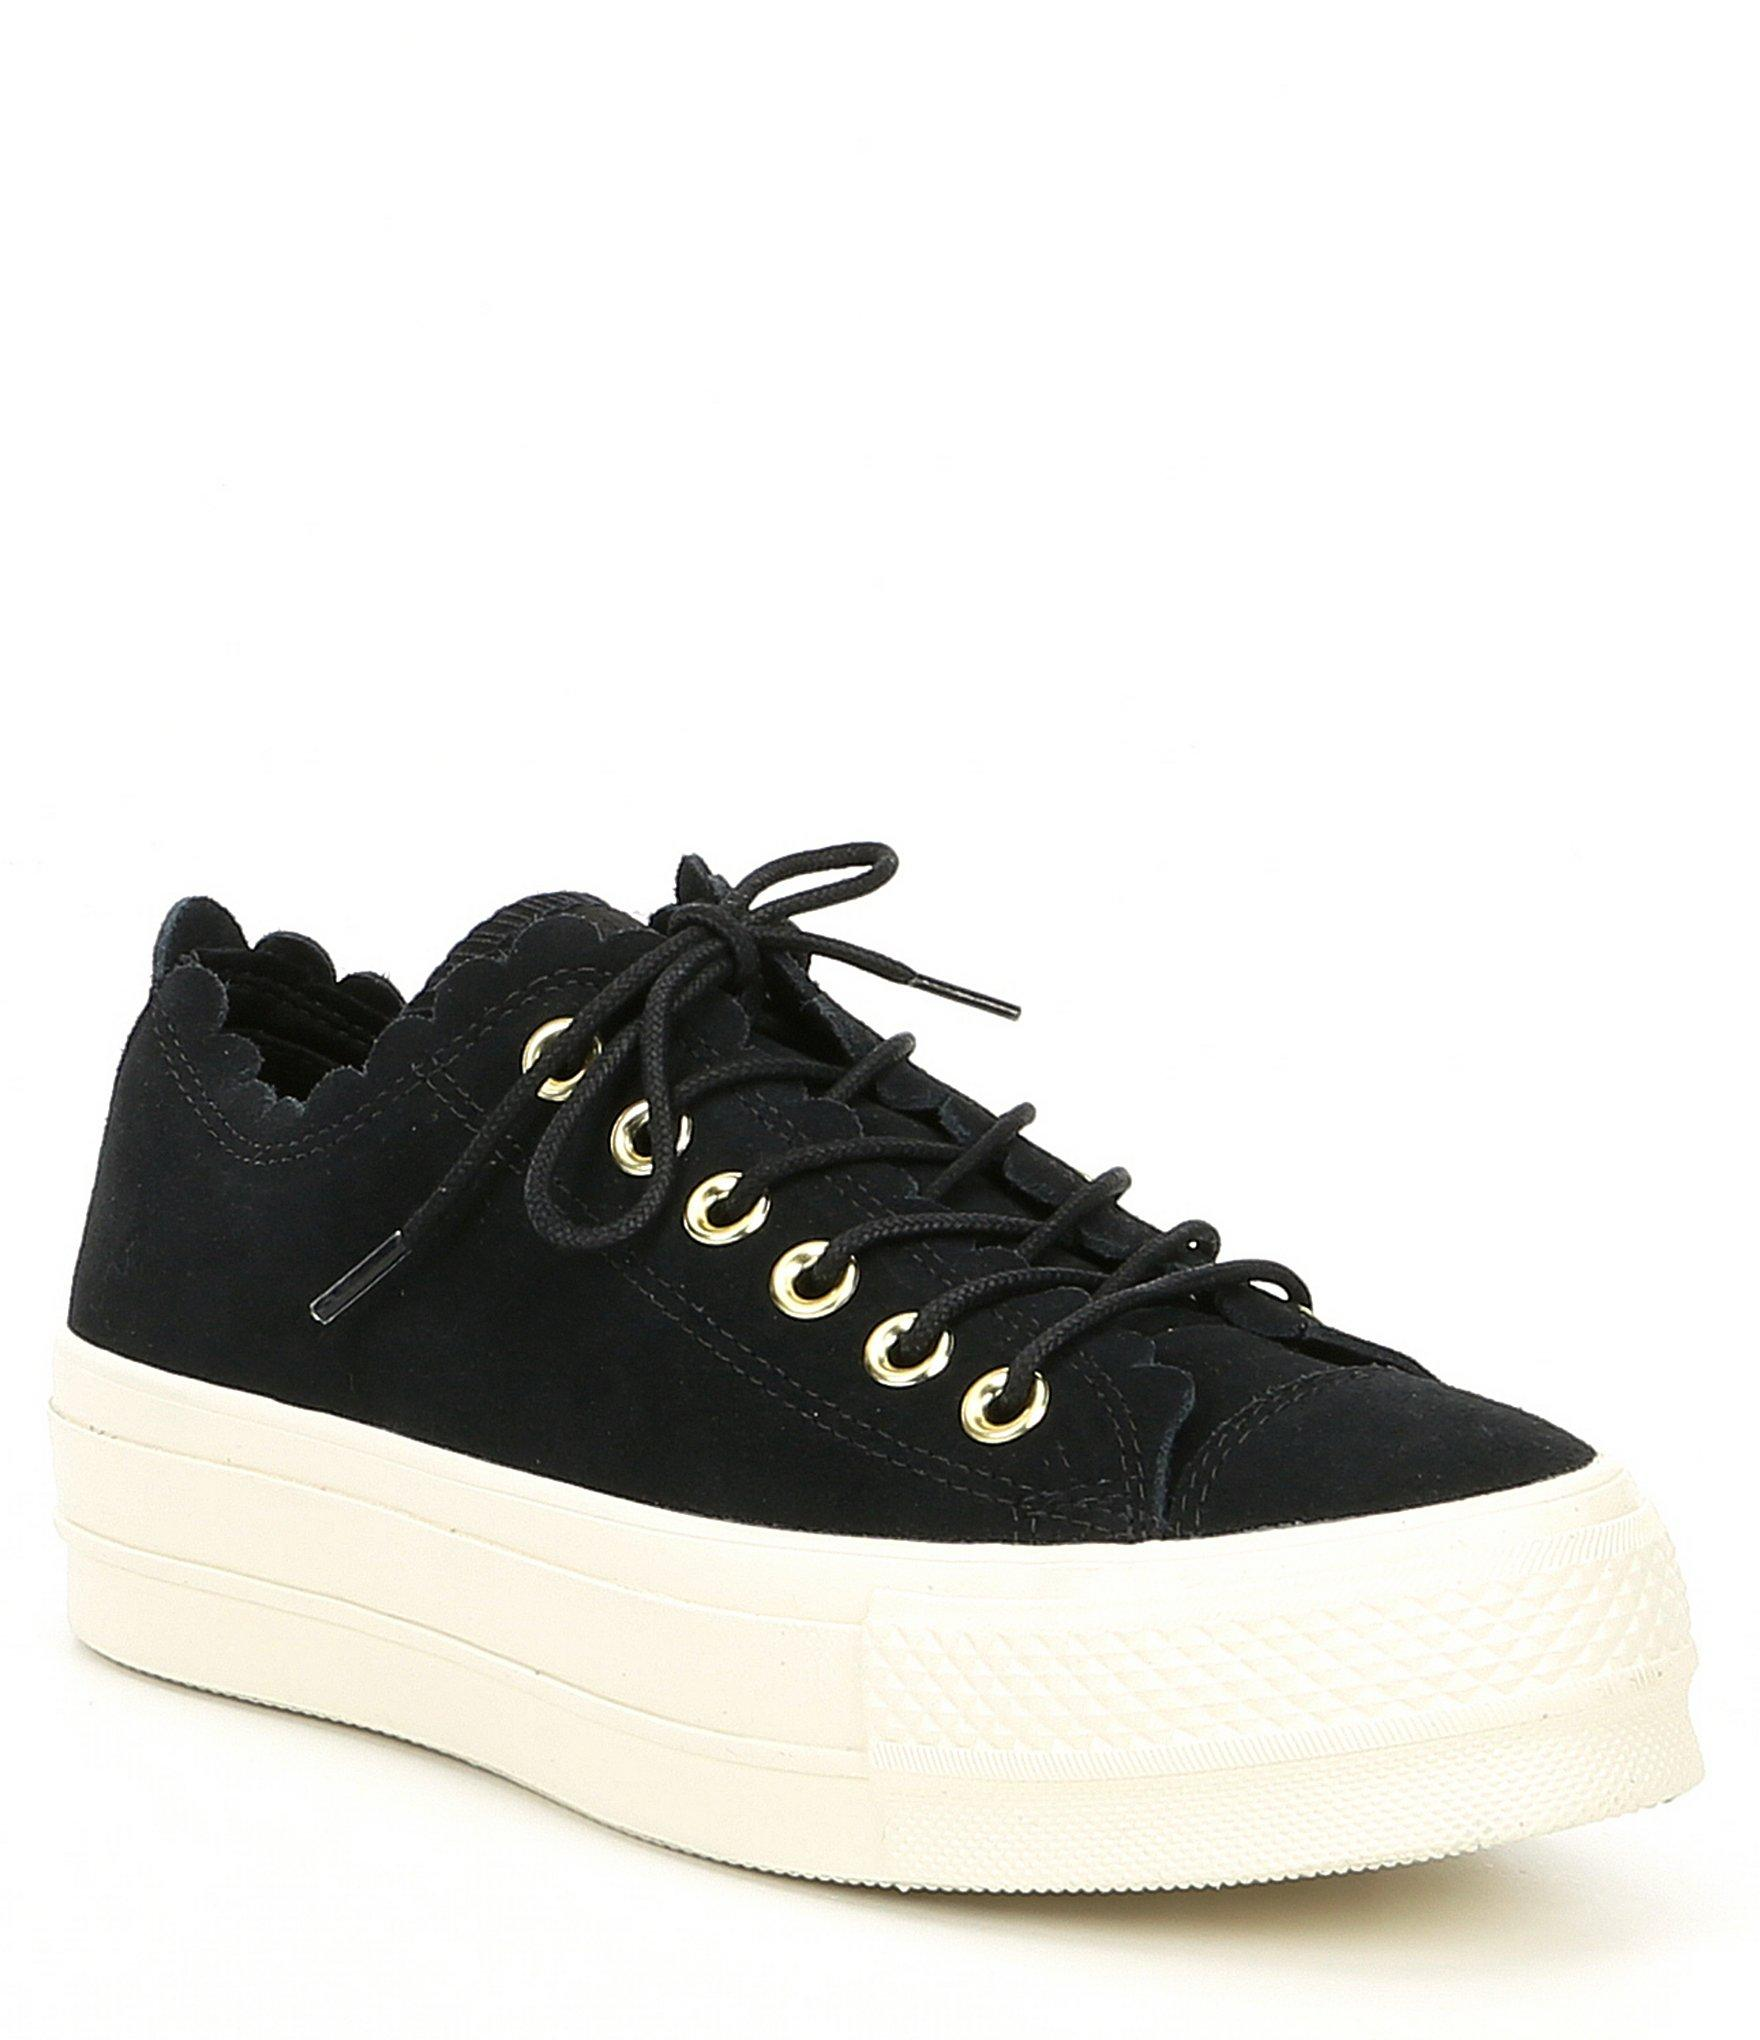 206e7c285ae Converse. Black Women s Chuck Taylor All Star Frilly Thrills Platform  Sneakers